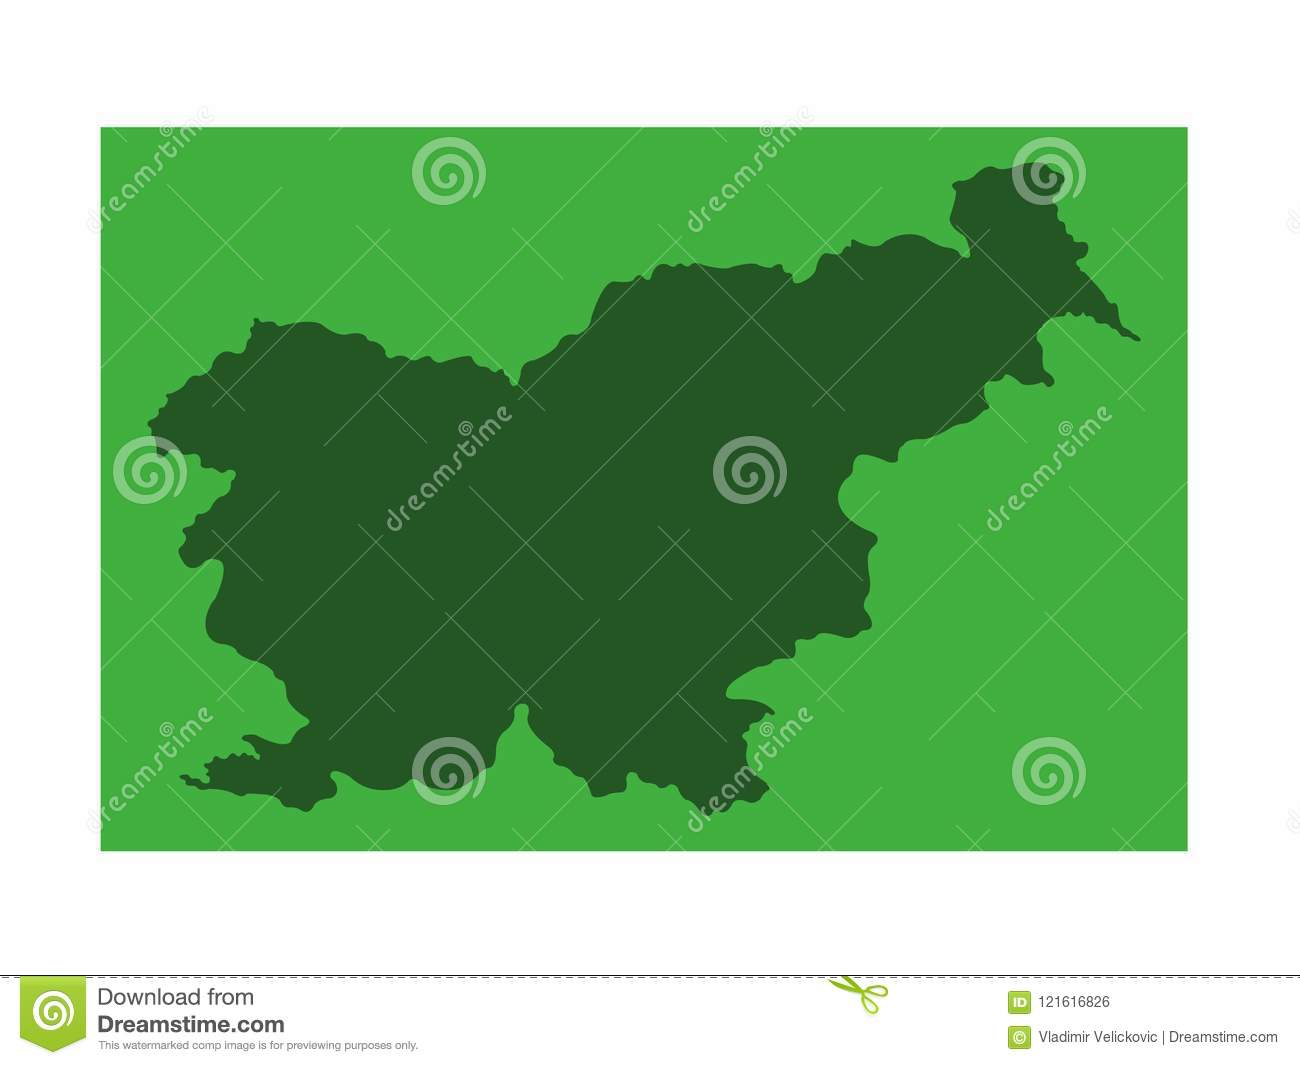 Slovenia Map - Country In Southern Central Europe Stock Vector ...